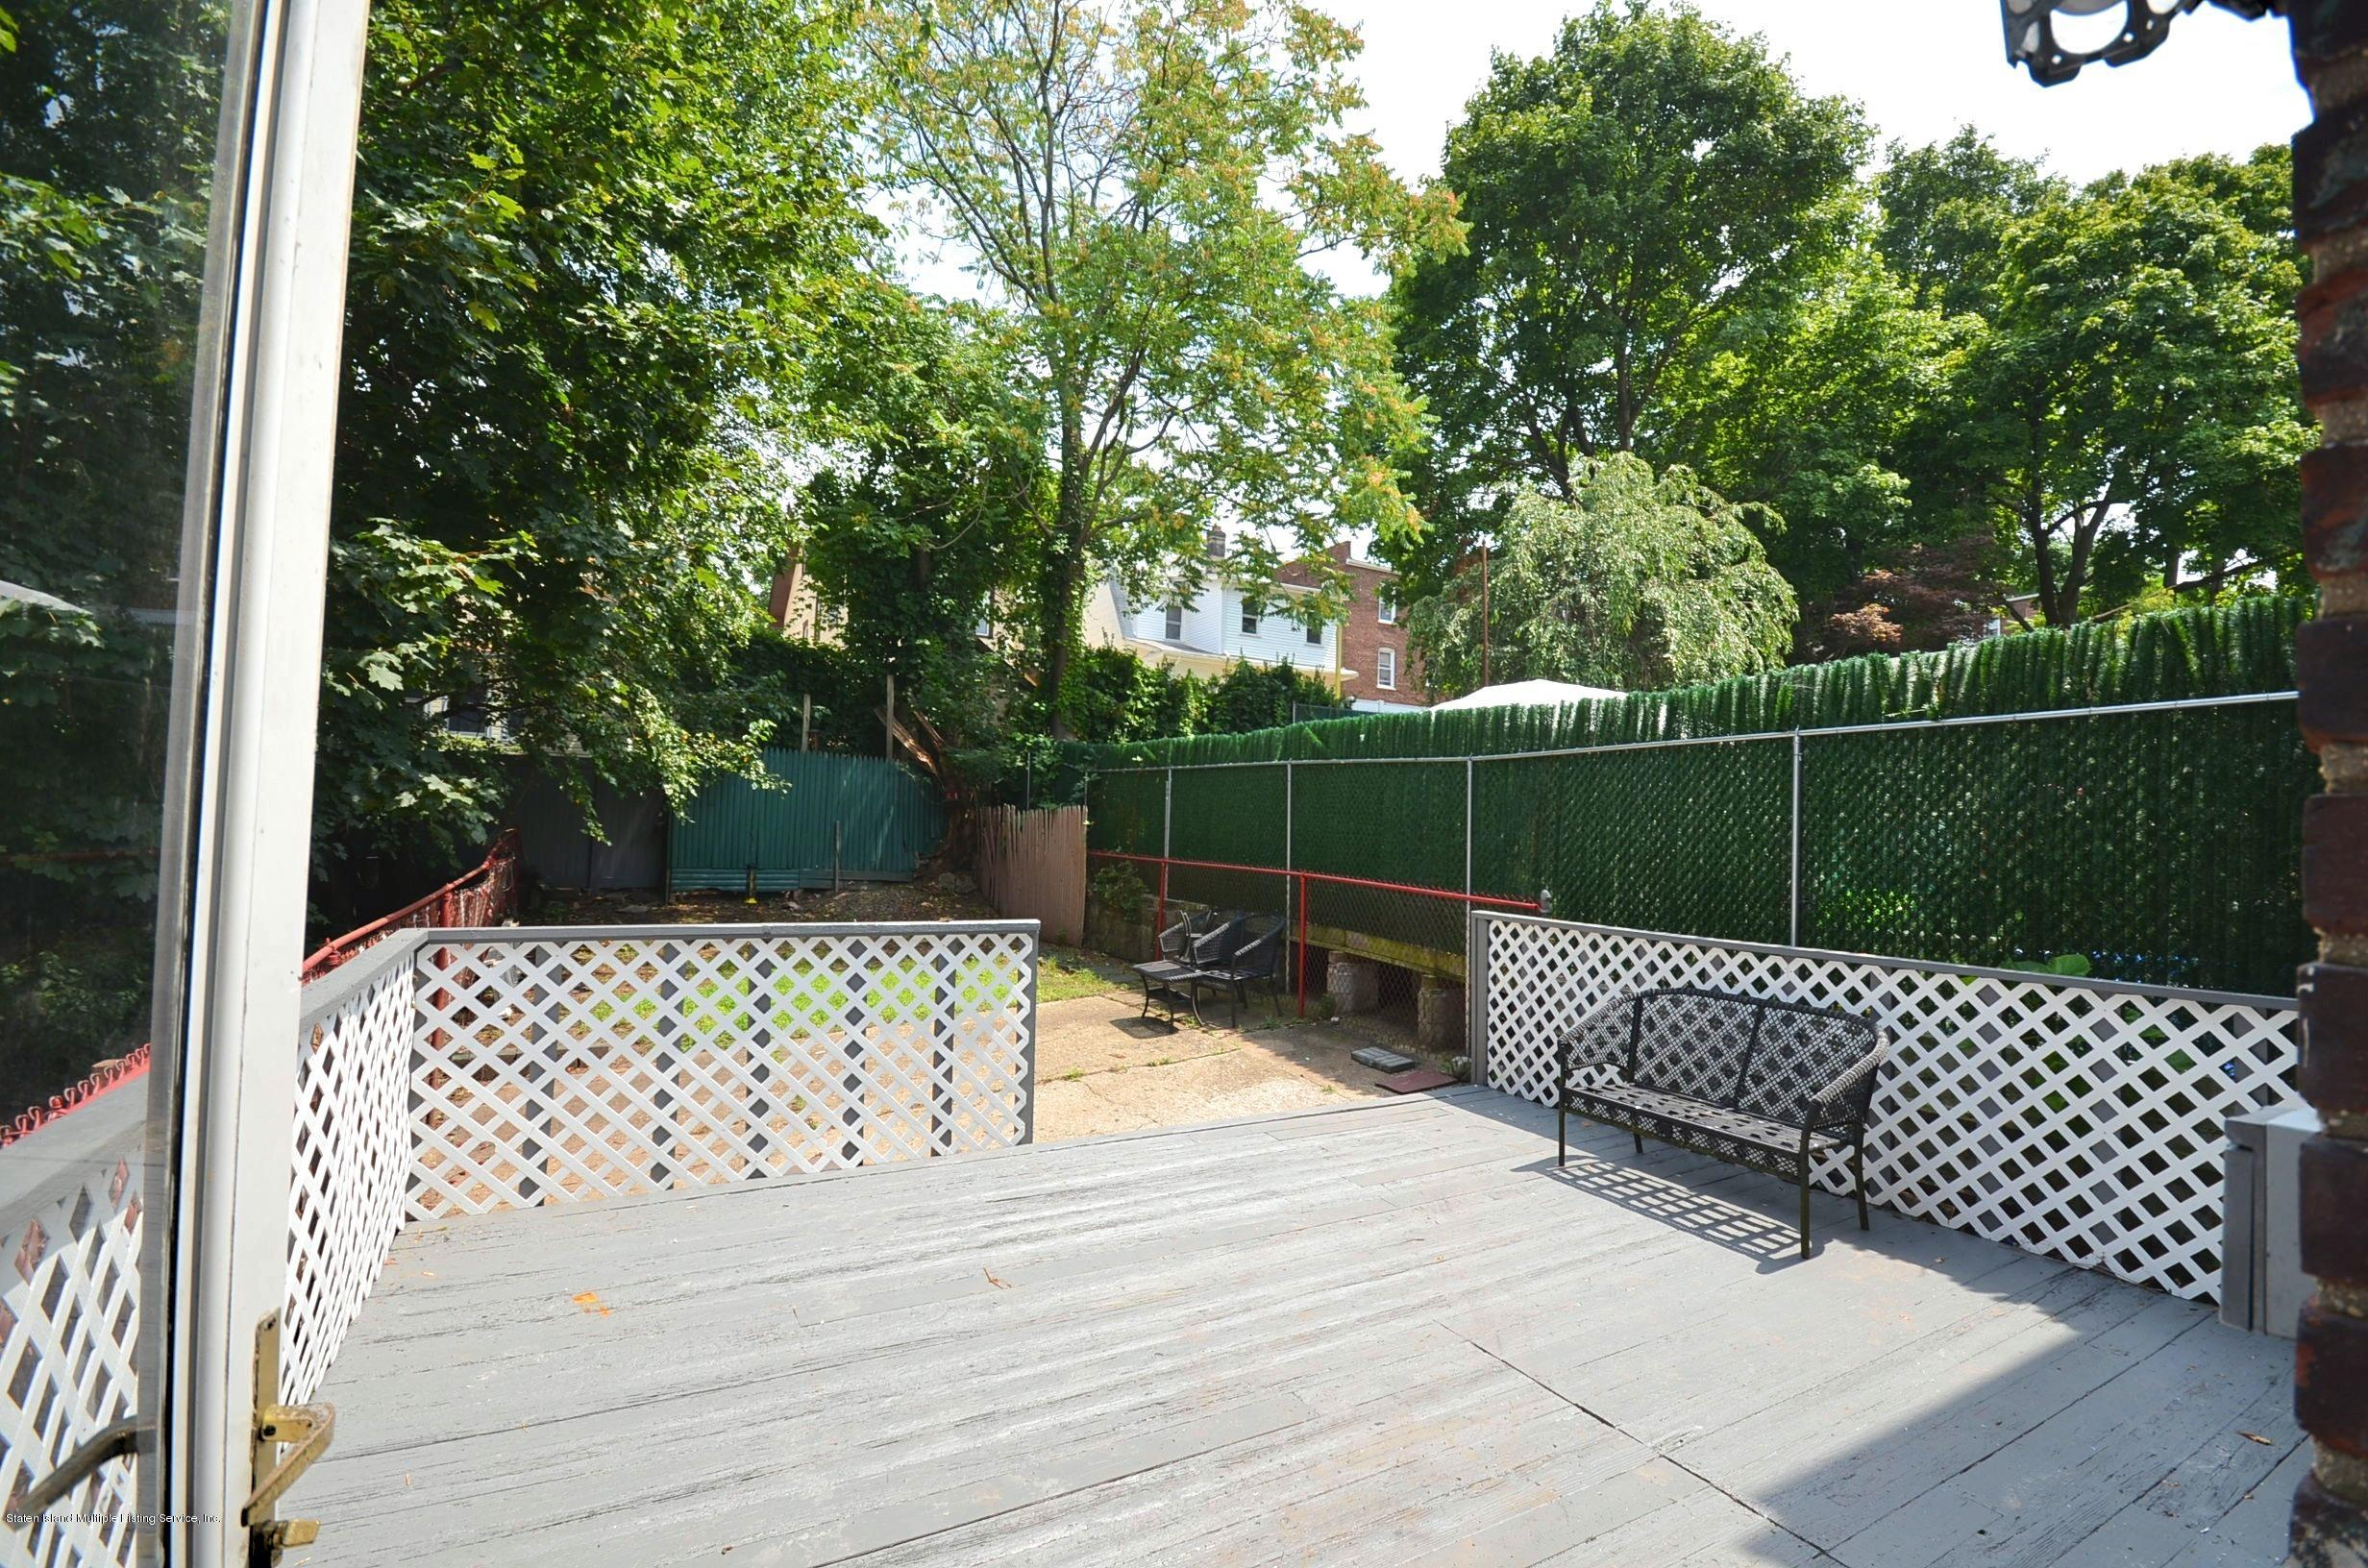 Single Family - Attached 113 Pendleton Place  Staten Island, NY 10301, MLS-1131171-14